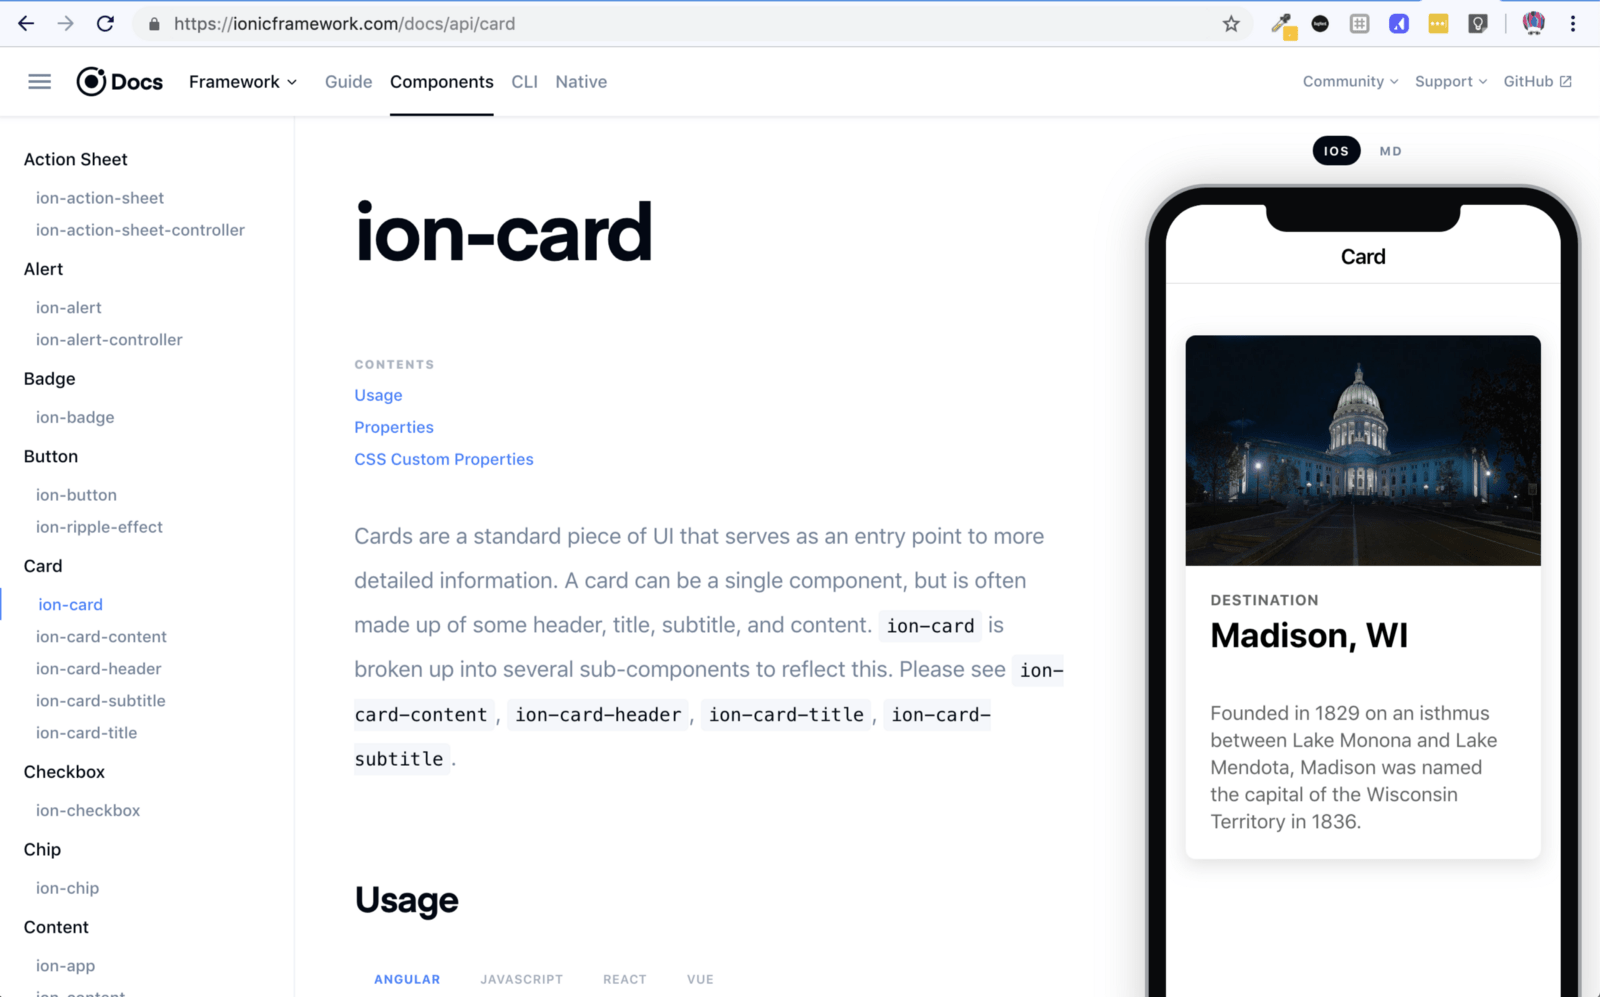 Building an Ionic application using React